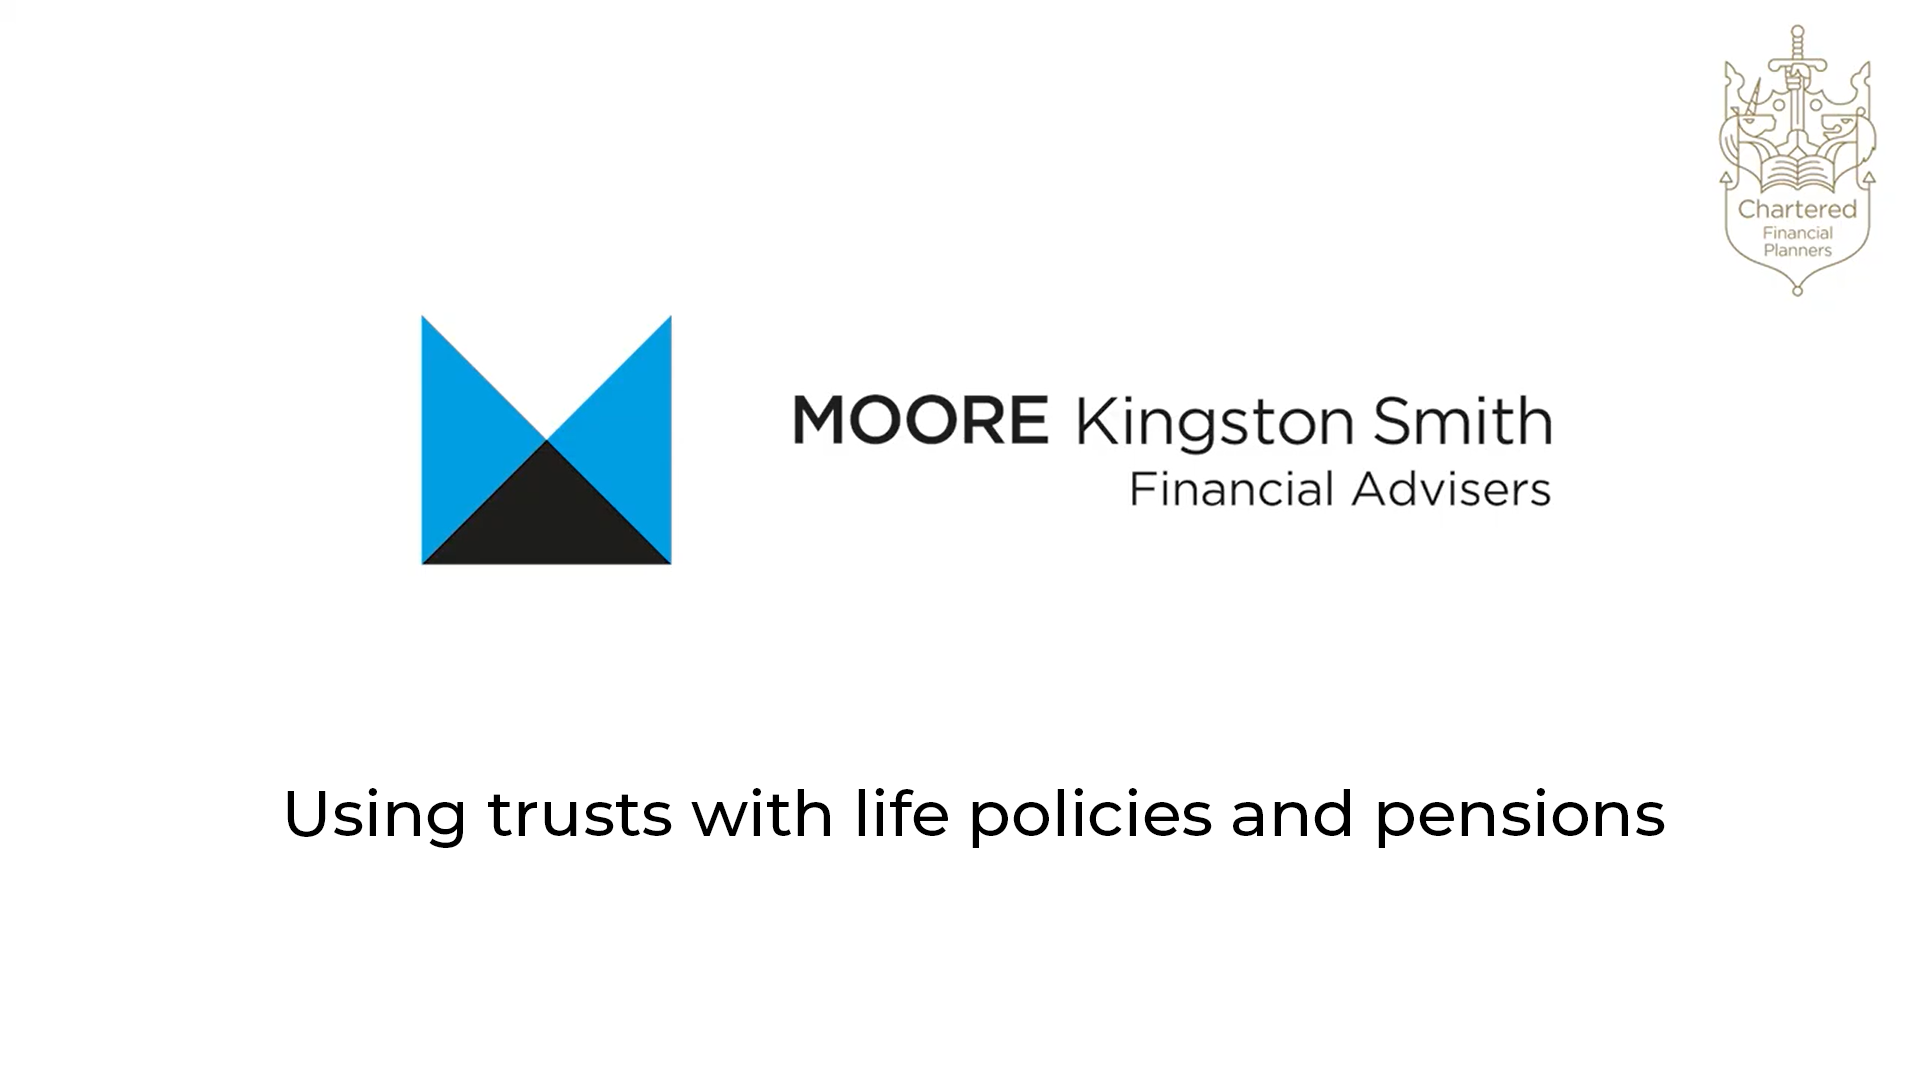 Using trusts with life policies and pensions